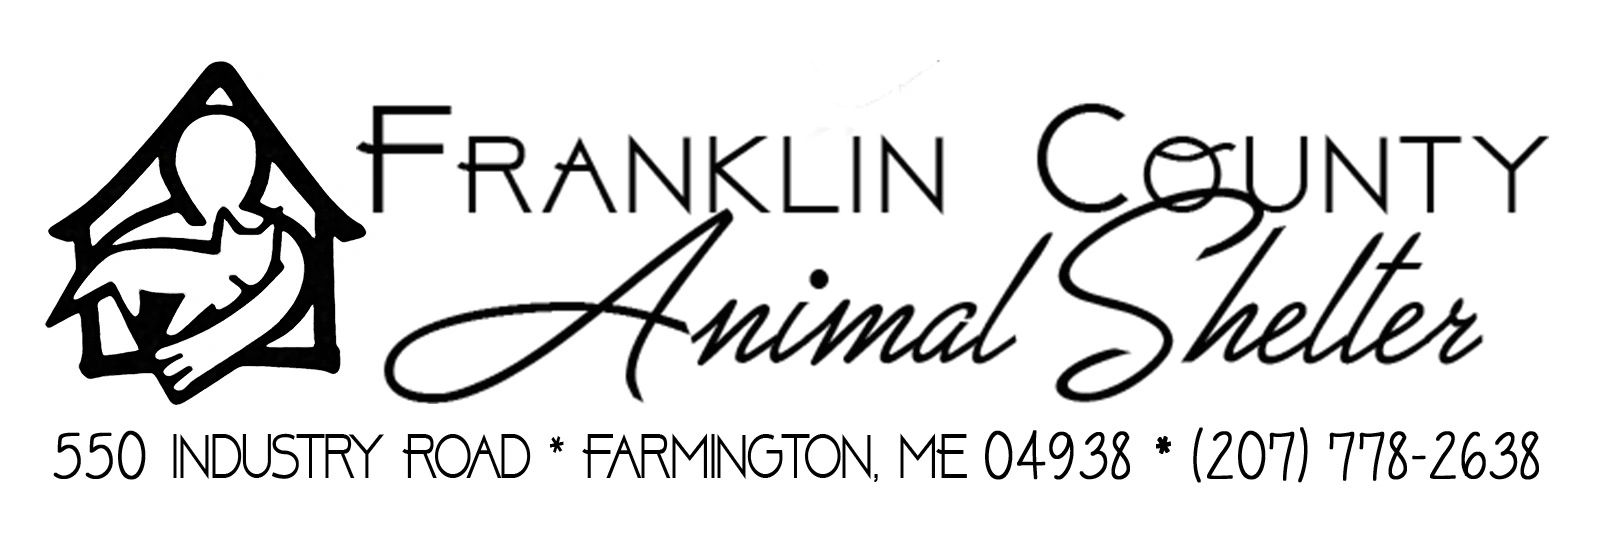 Franklin County Animal Shelter - Home